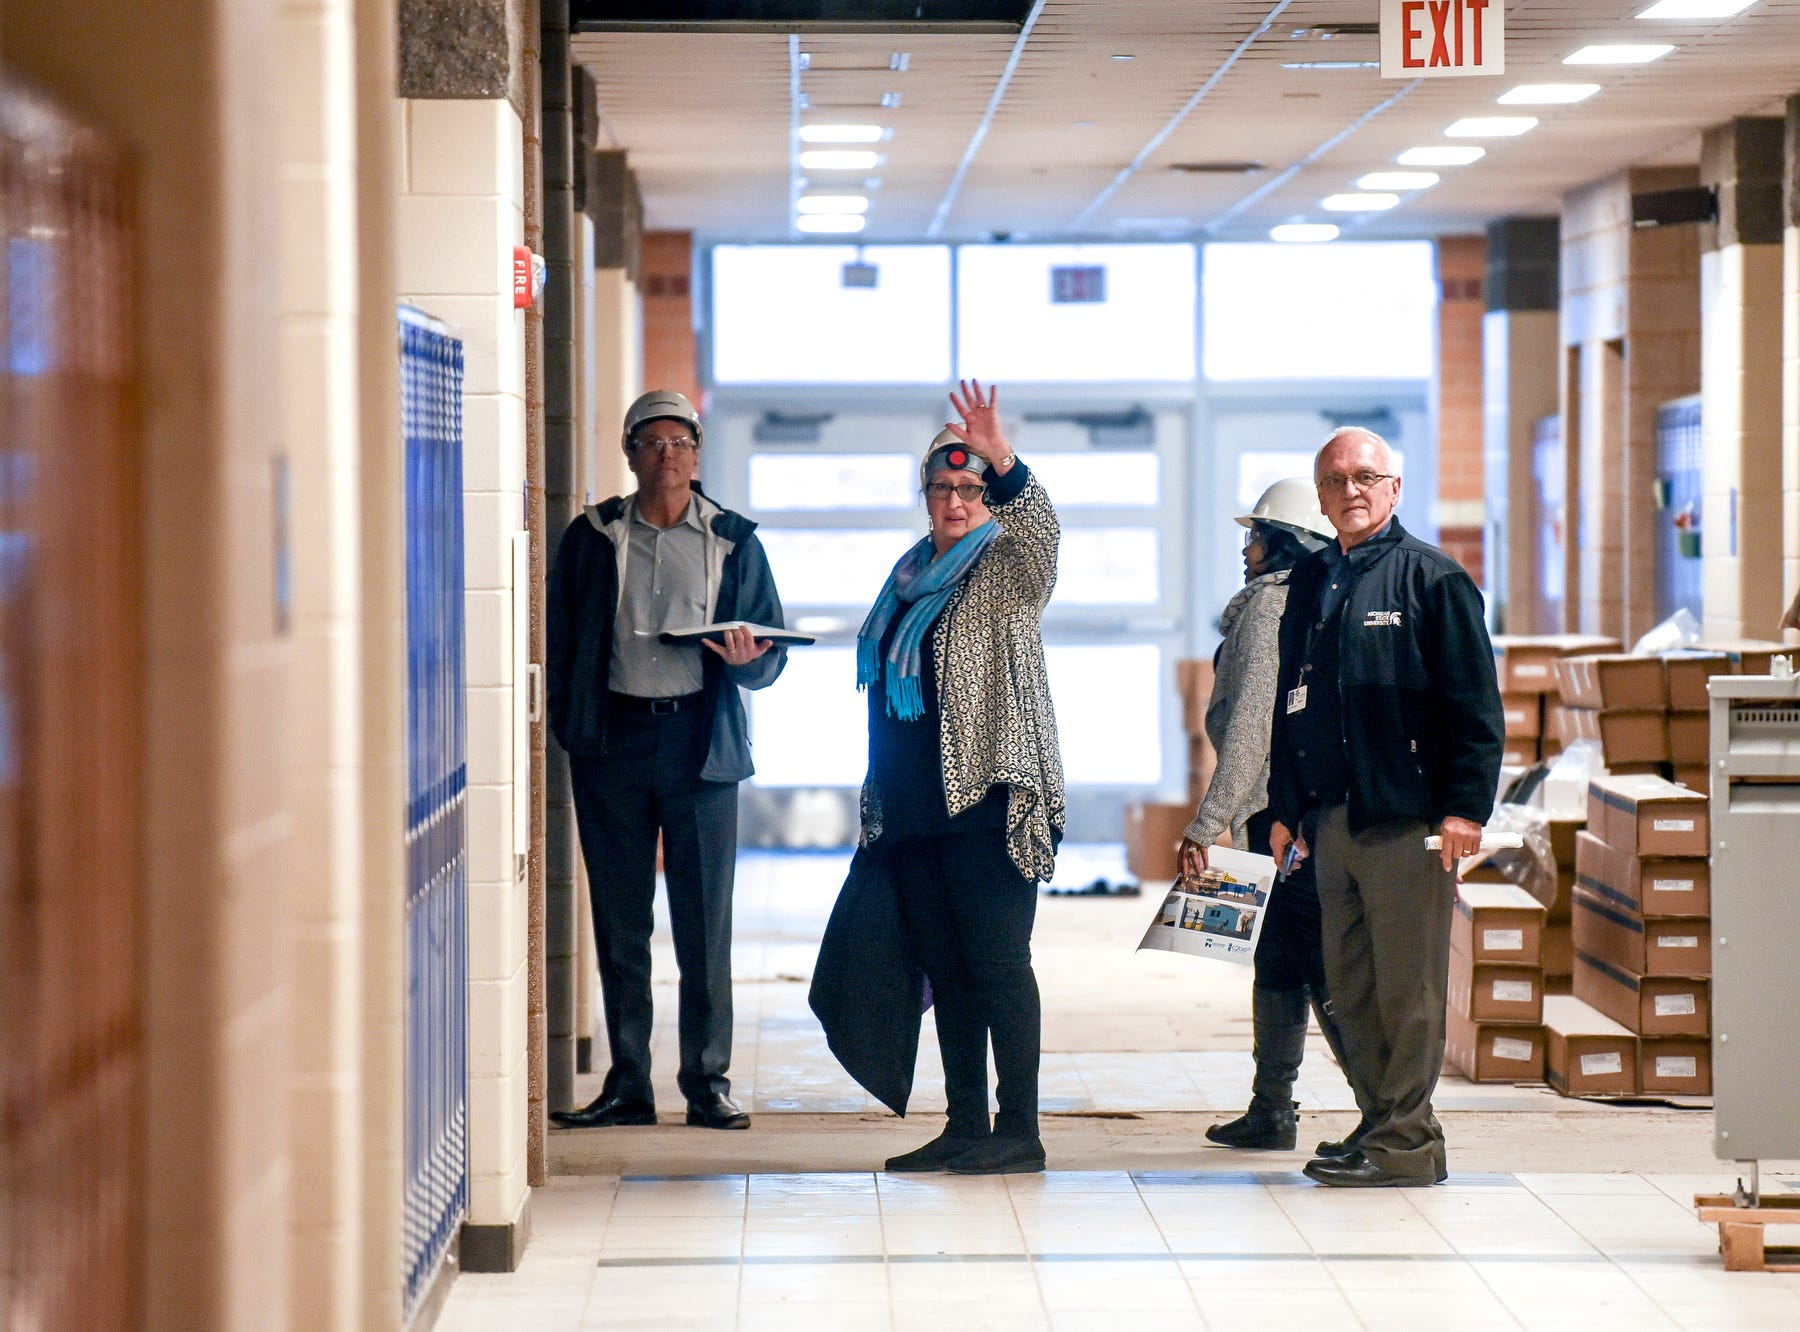 Lansing School District Superintendent Yvonne Caamal Canul, center, waves to guide guests to the science wing during a tour of the construction of the new Eastern High School on Thursday, March 14, 2019, in Lansing. The project is being funded by the district's successful Pathway Promise millage, which was passed by voters in 2016. The building was formerly Pattengill Academy.